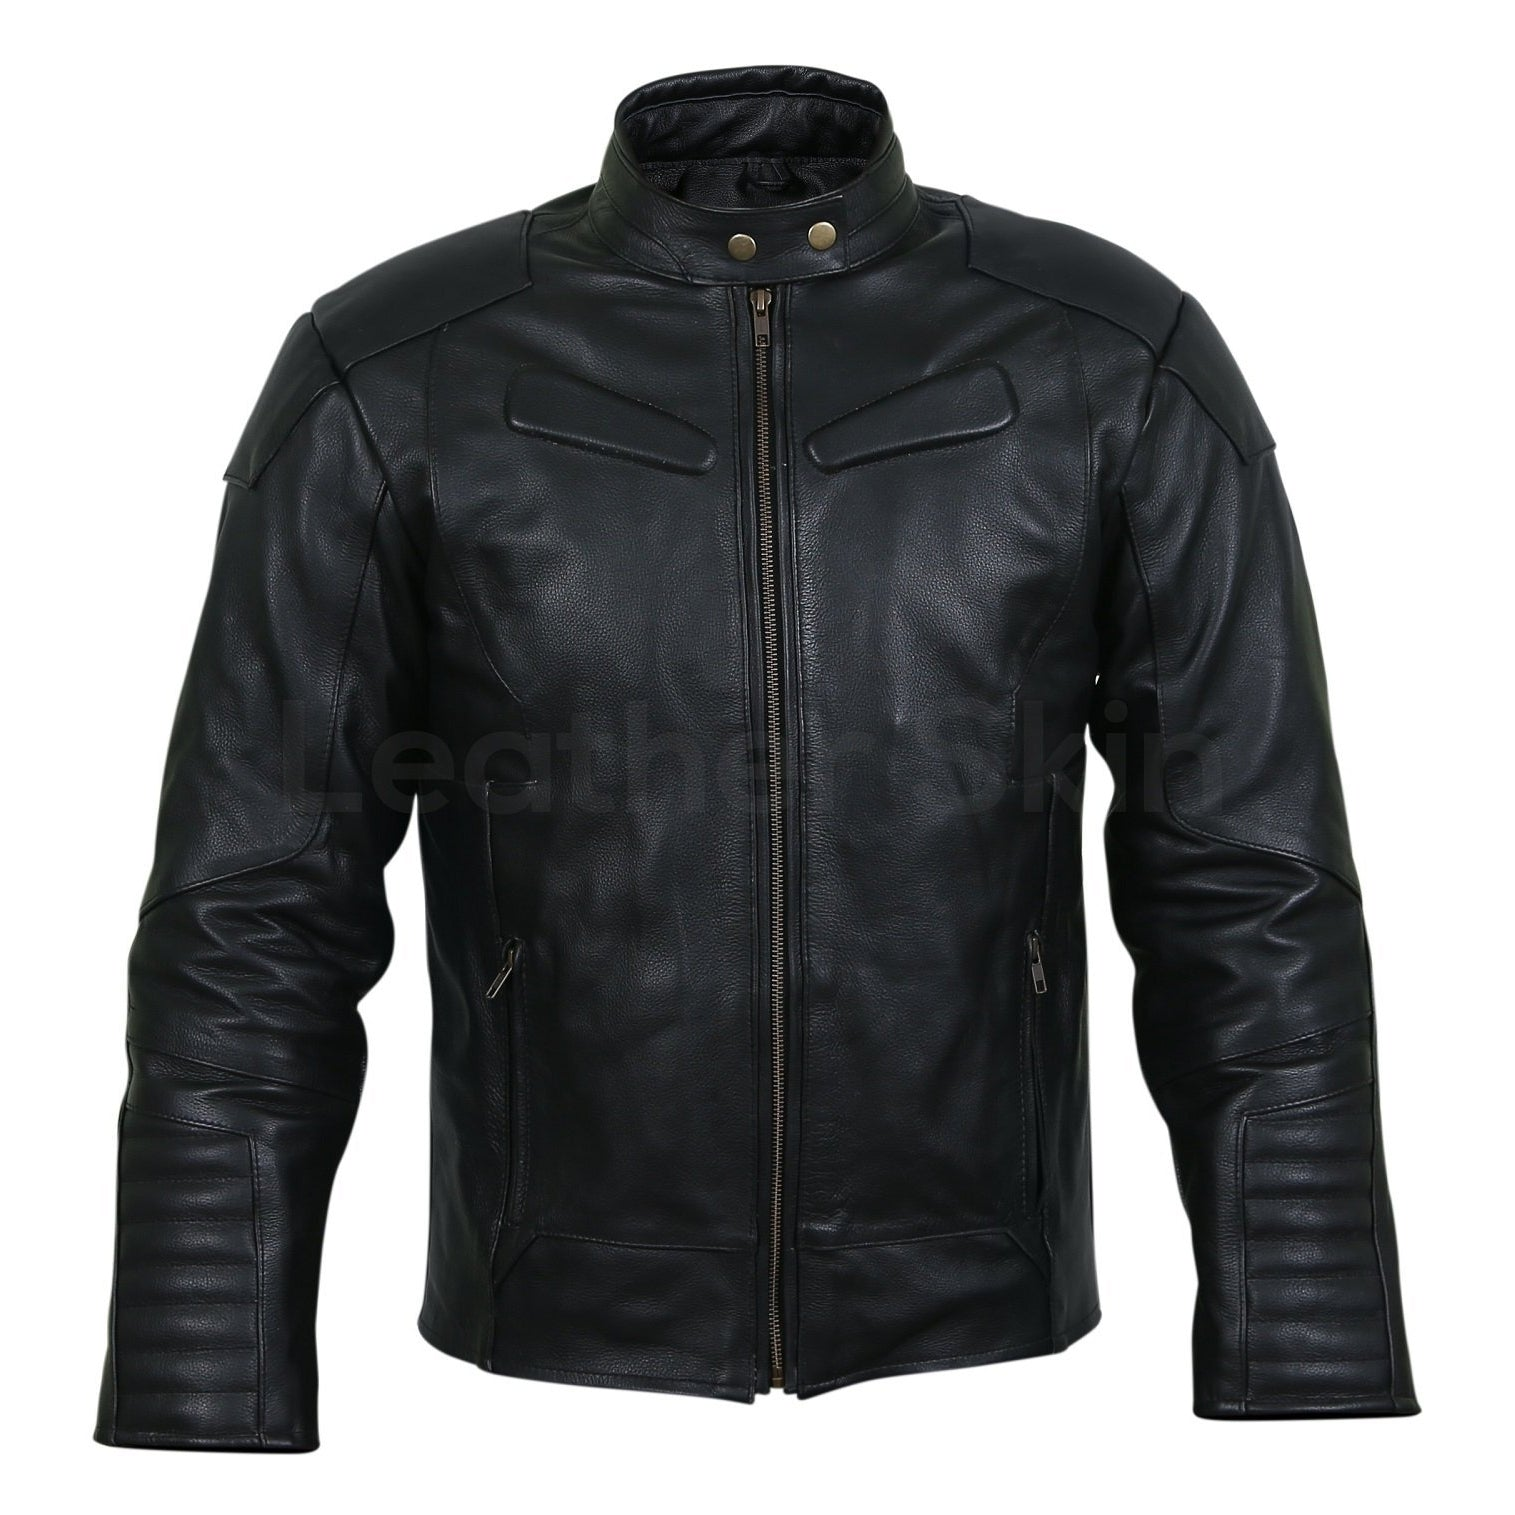 812d78d17 Buy Motorcycle Leather Jackets Online | Buy Best Jackets Online ...